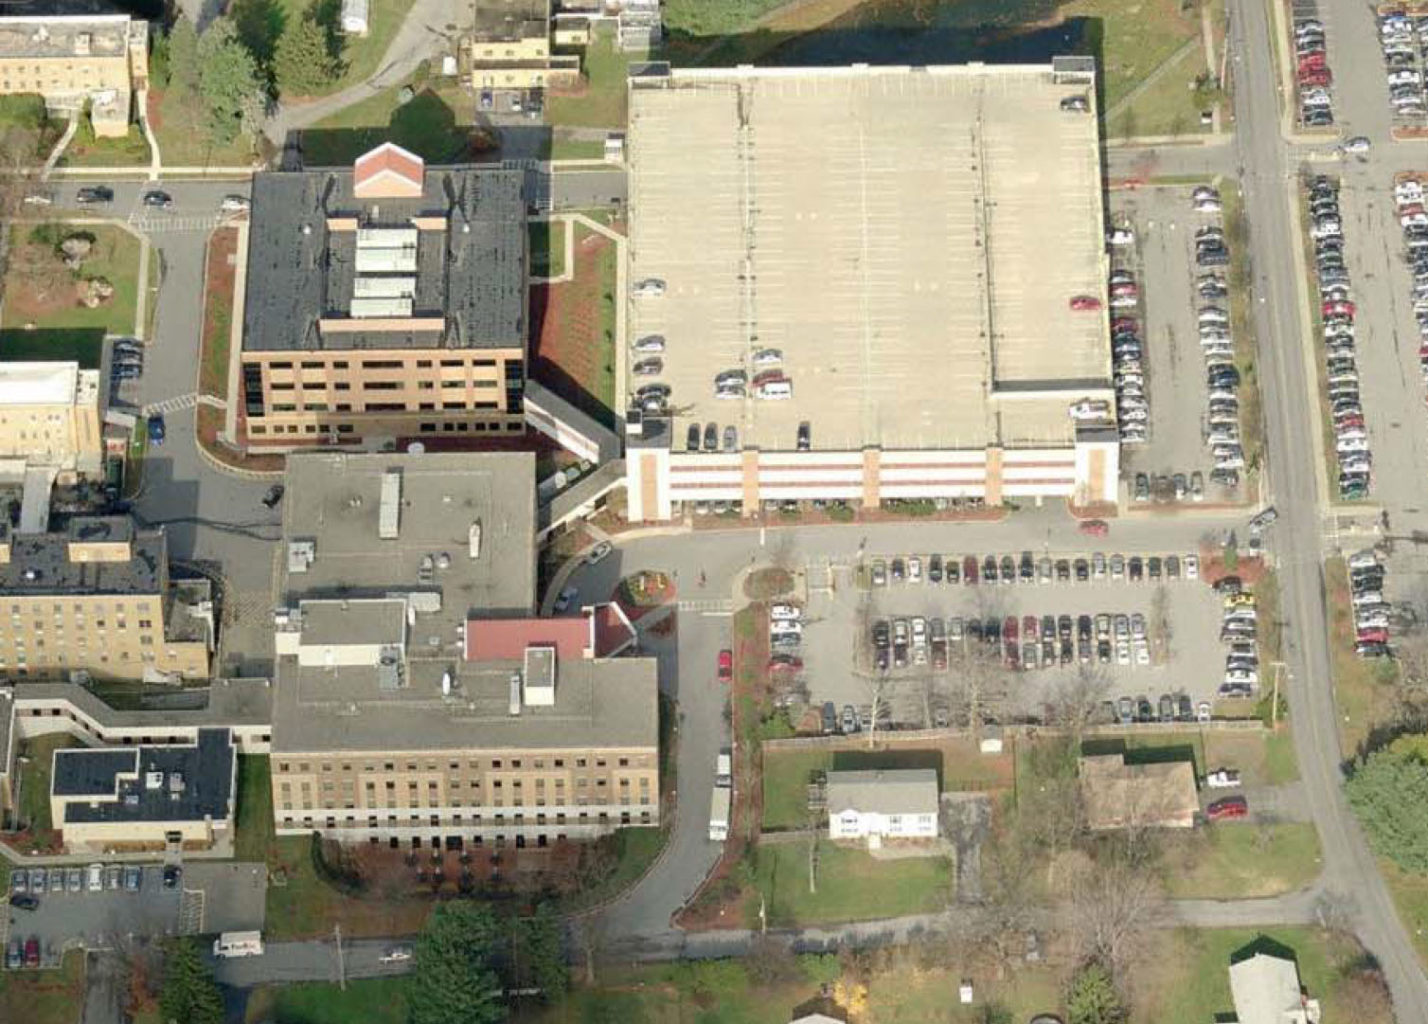 St. Francis Hospital - parking structure